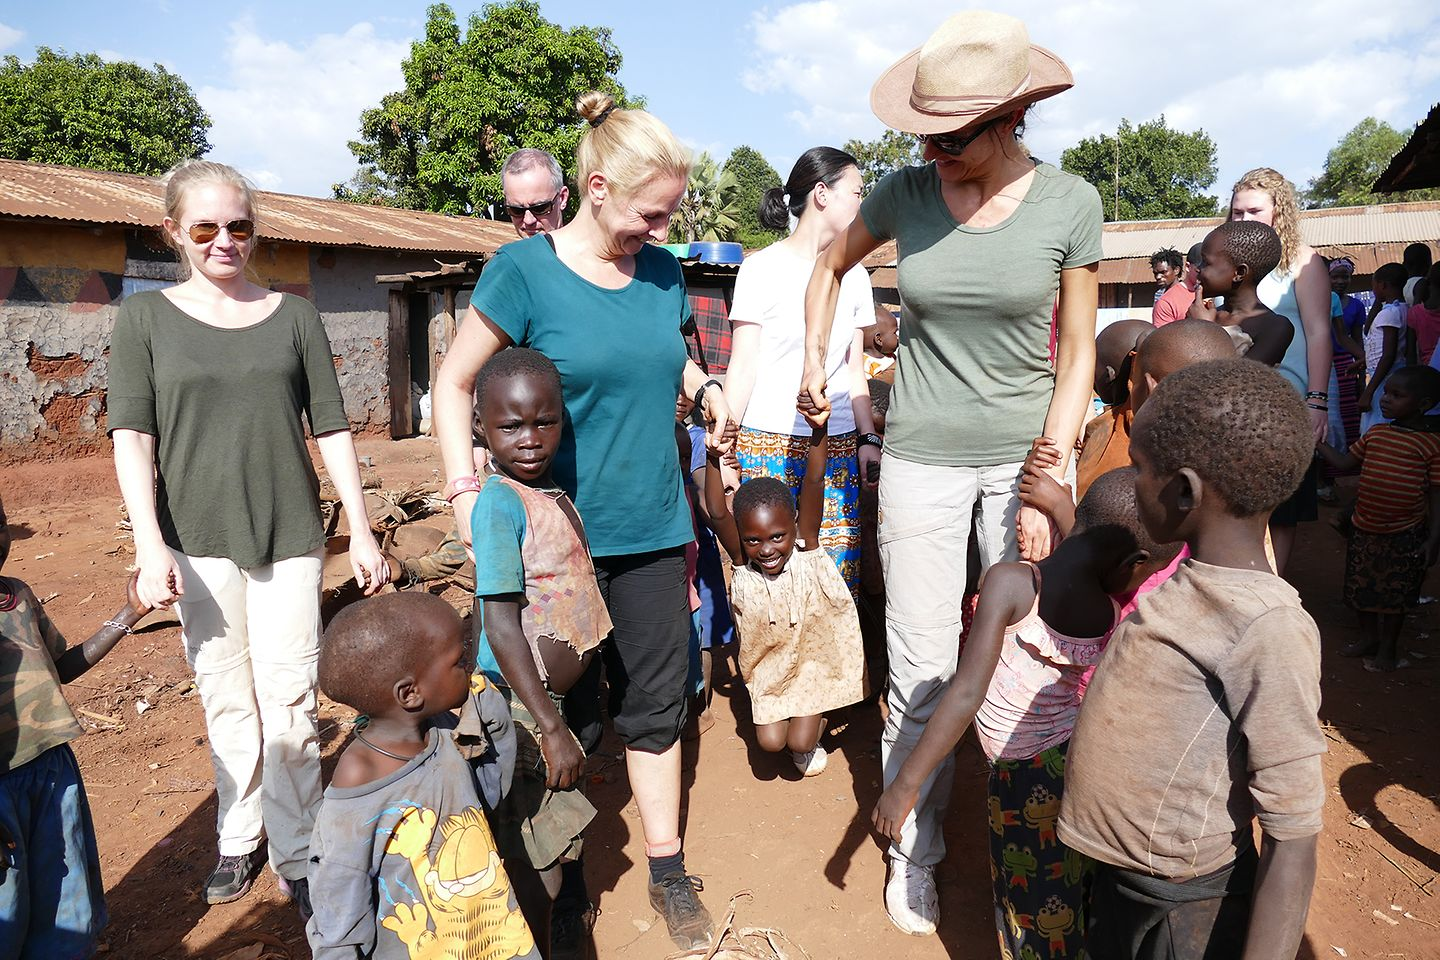 Playing with the visitors in Masese